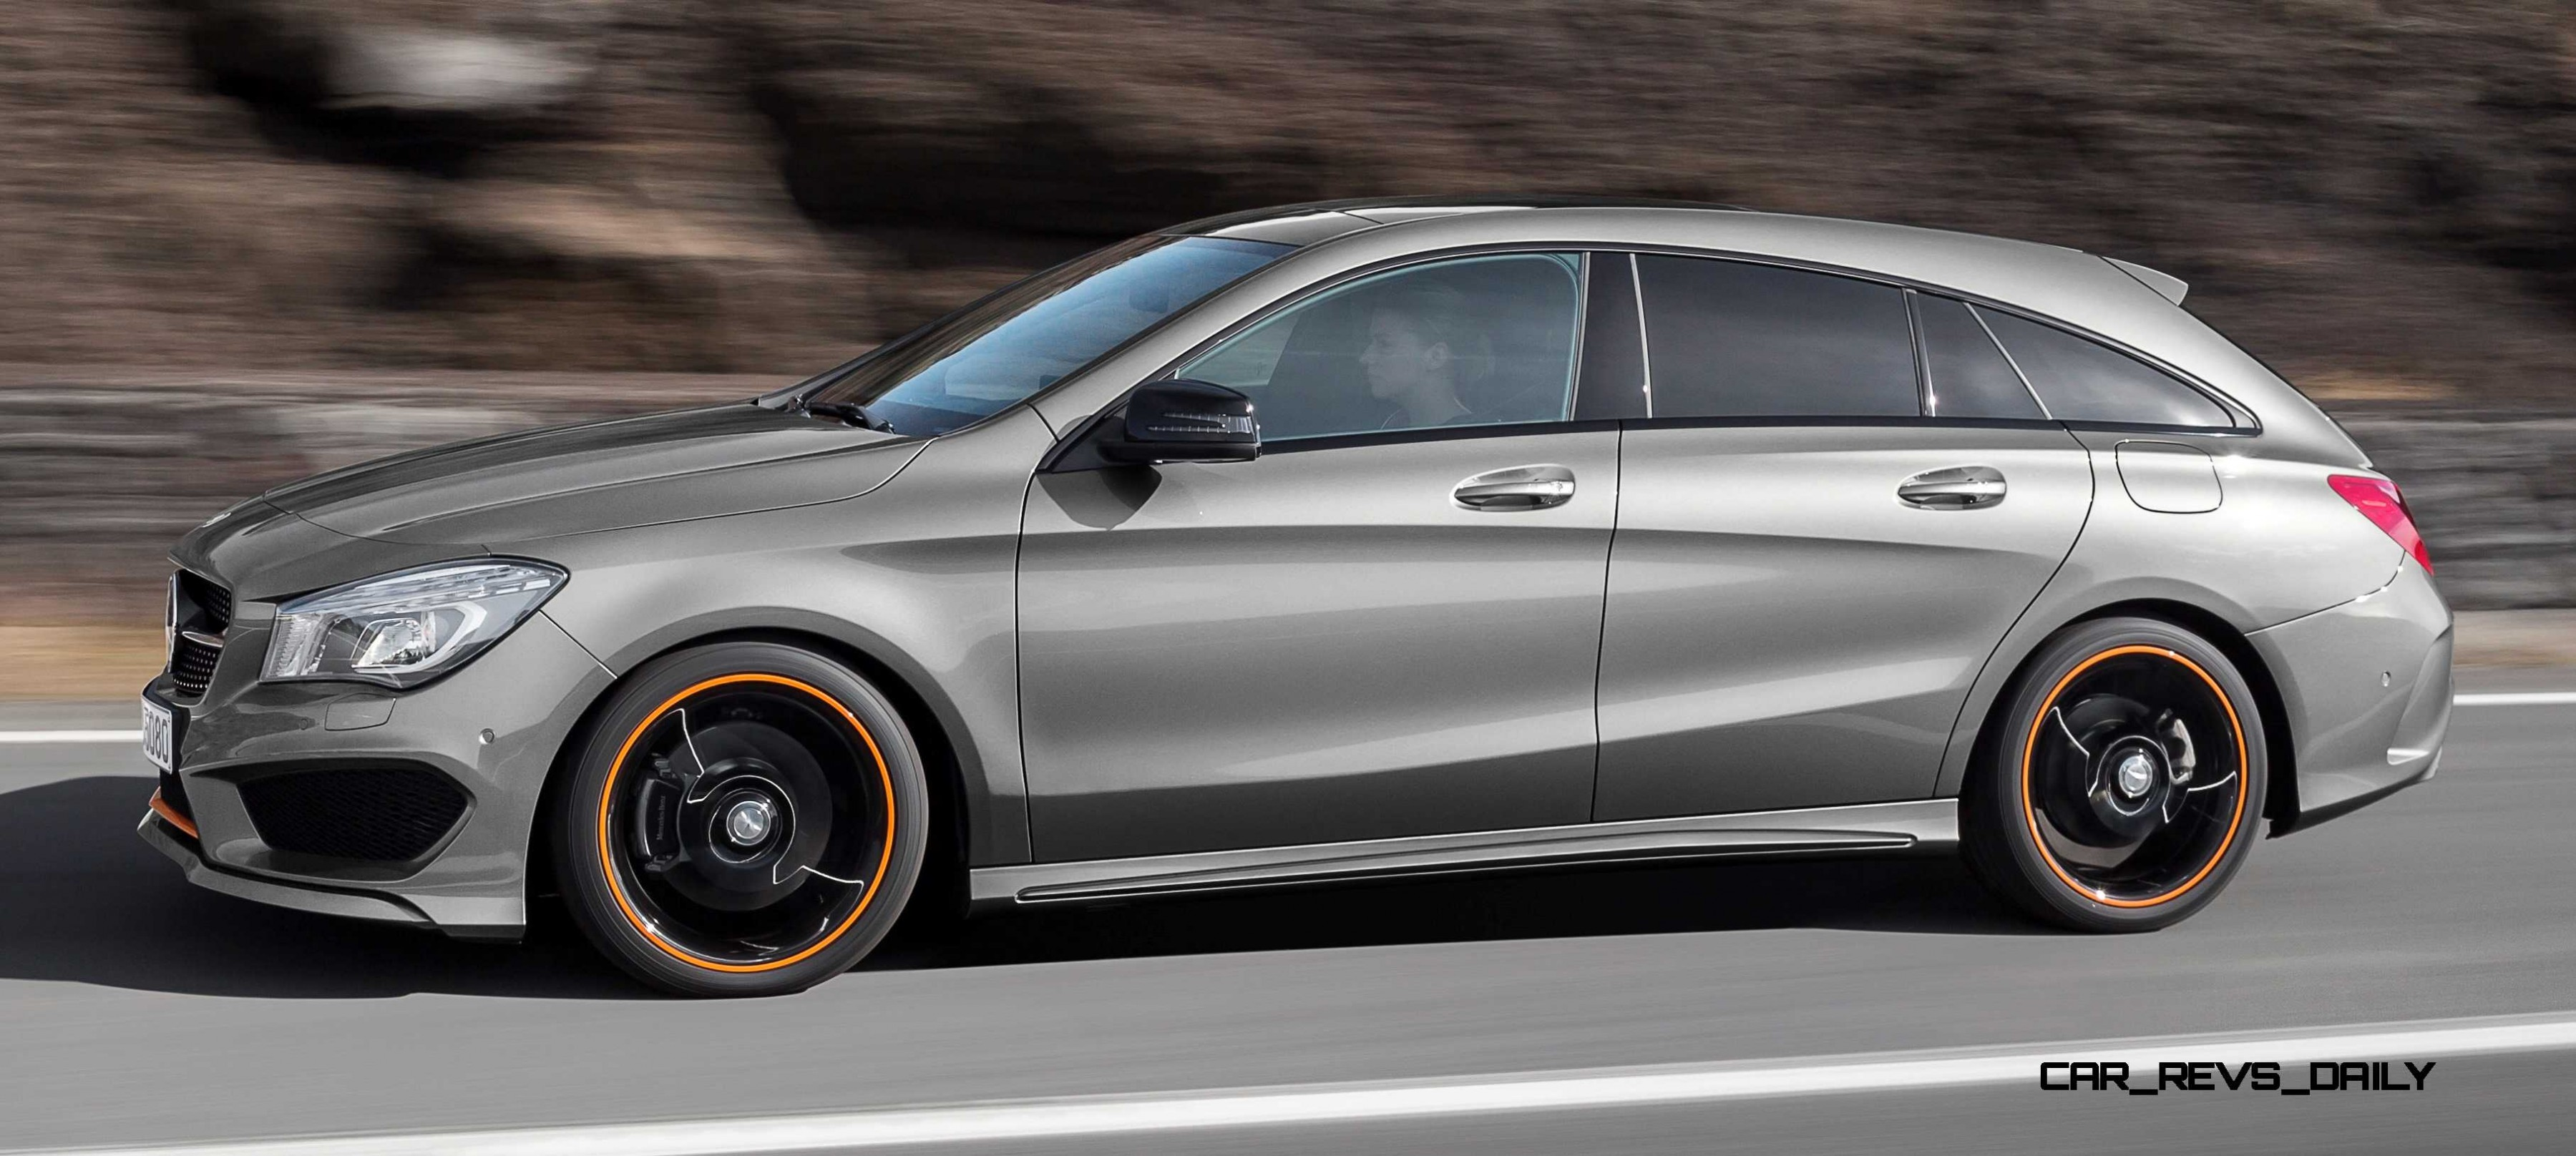 2016 mercedes benz cla250 shooting brake revealed for euro markets. Black Bedroom Furniture Sets. Home Design Ideas